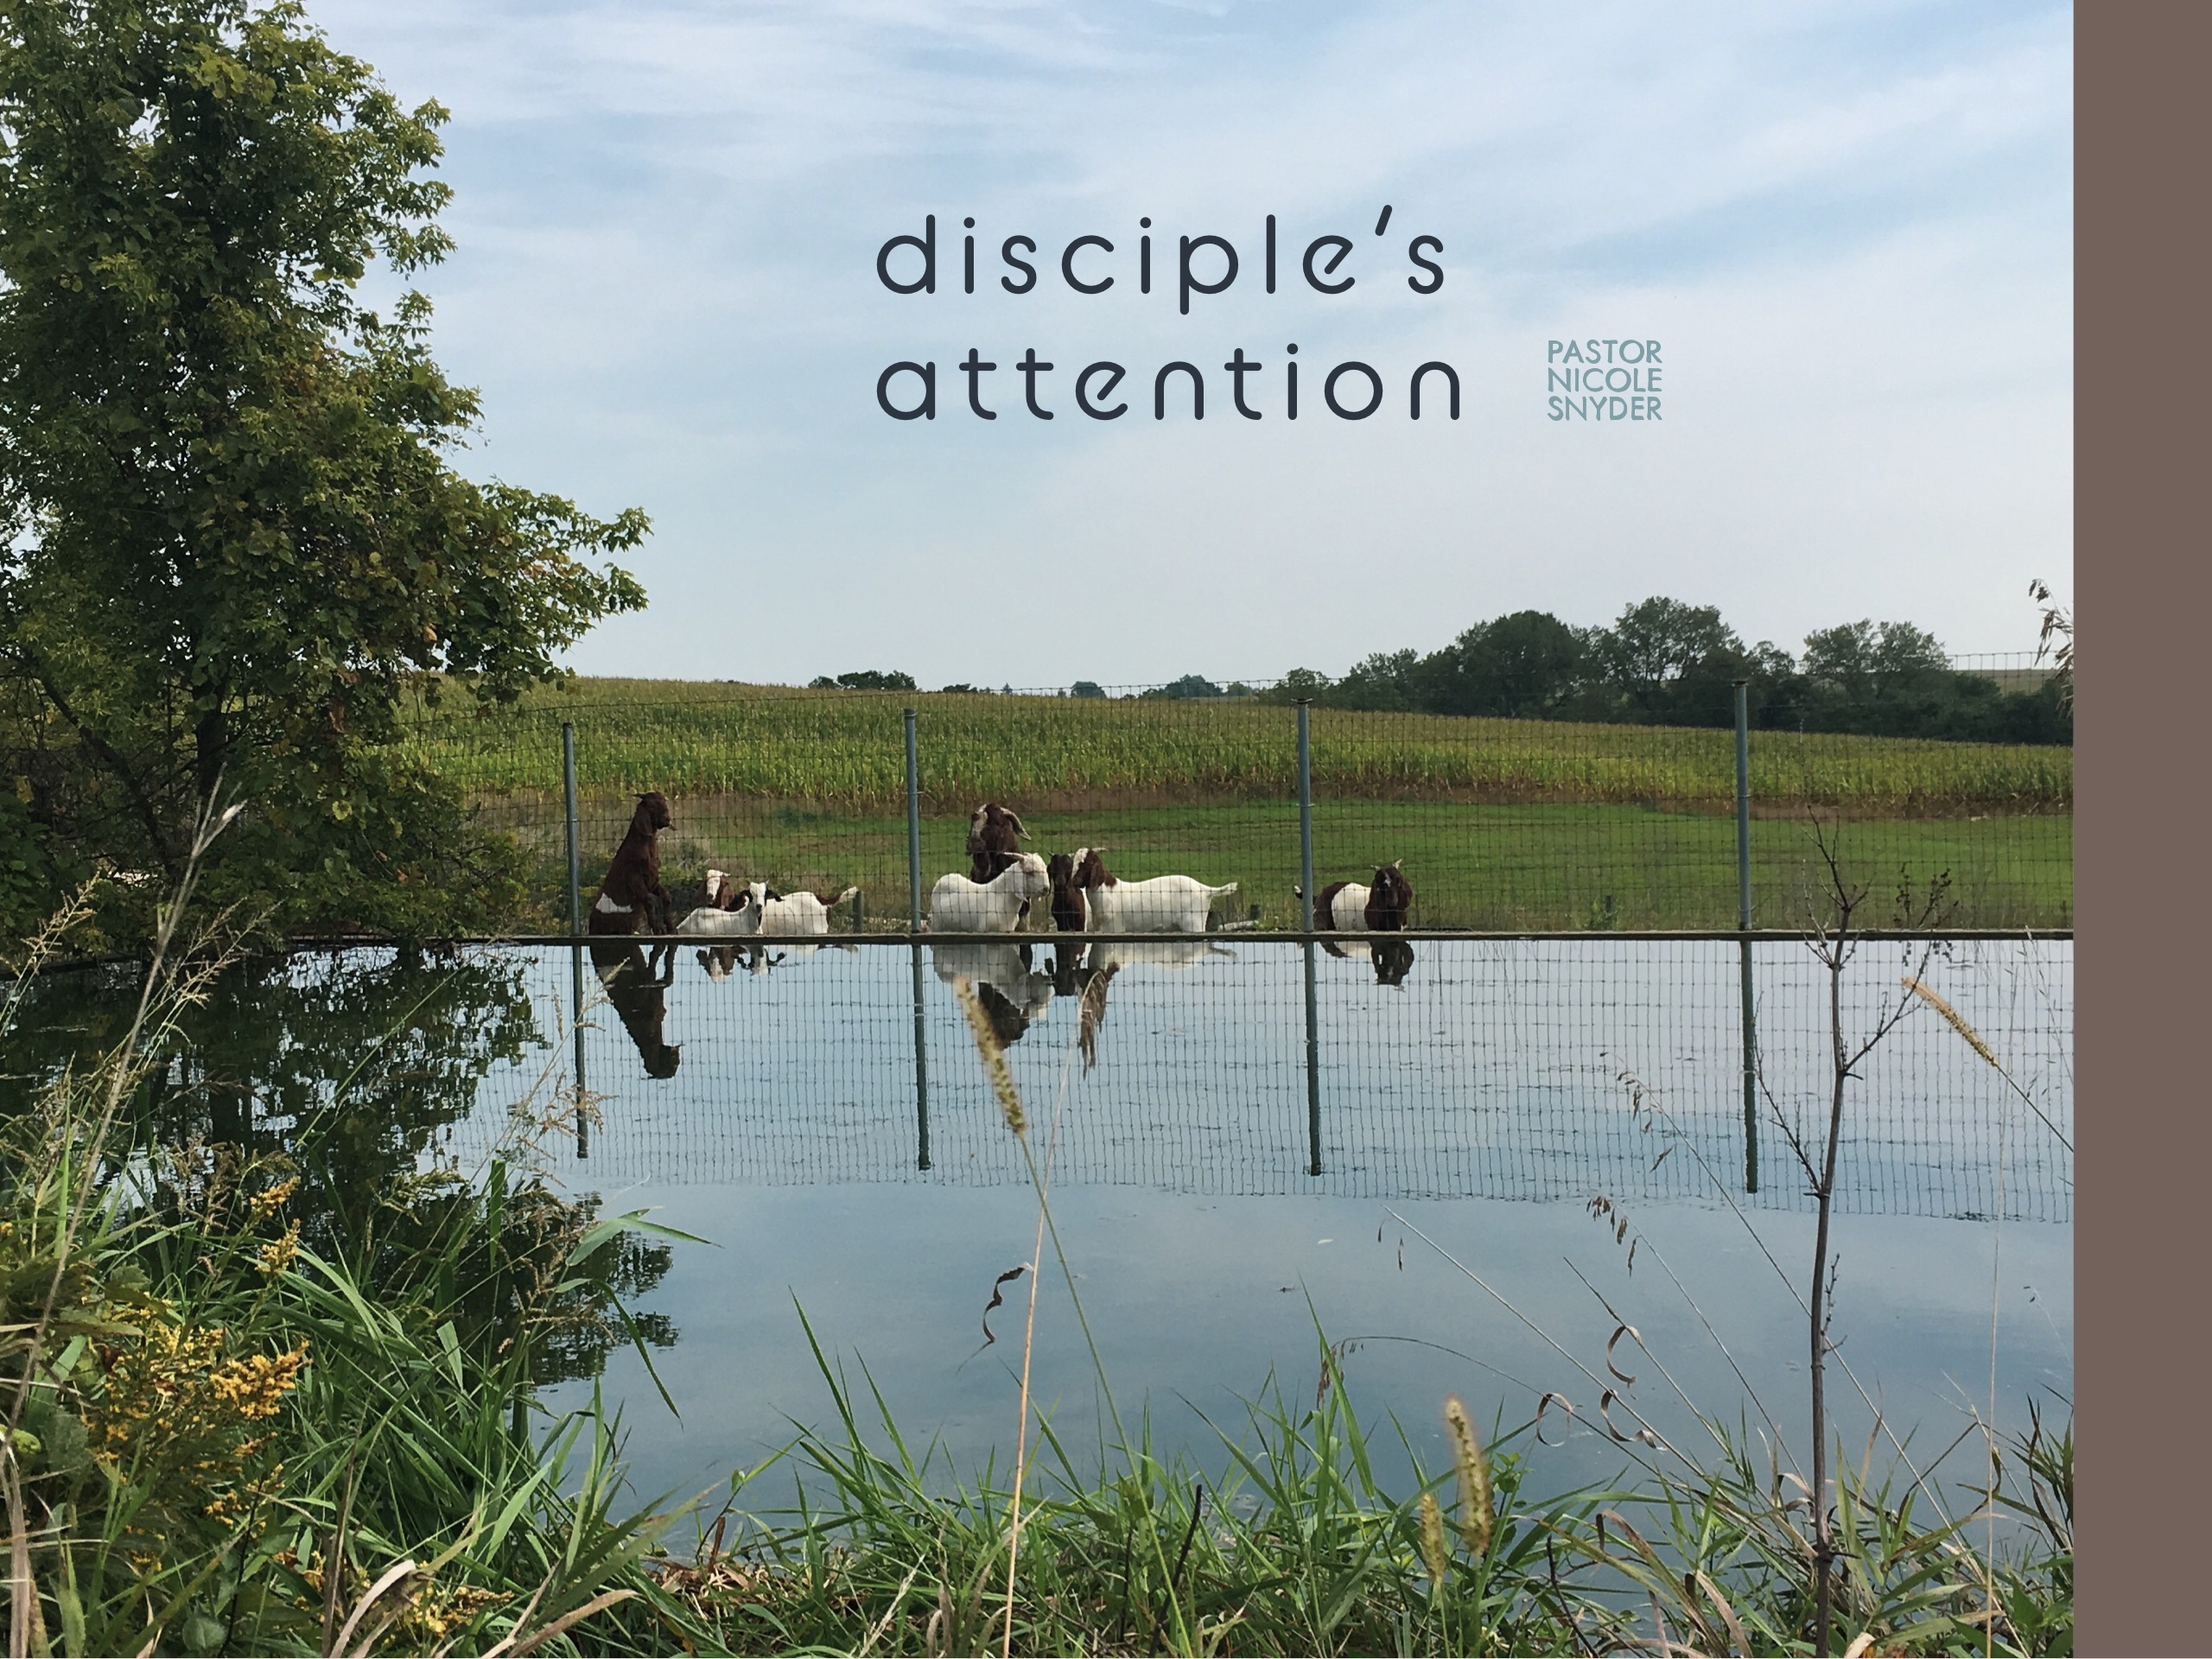 Disciple's Attention